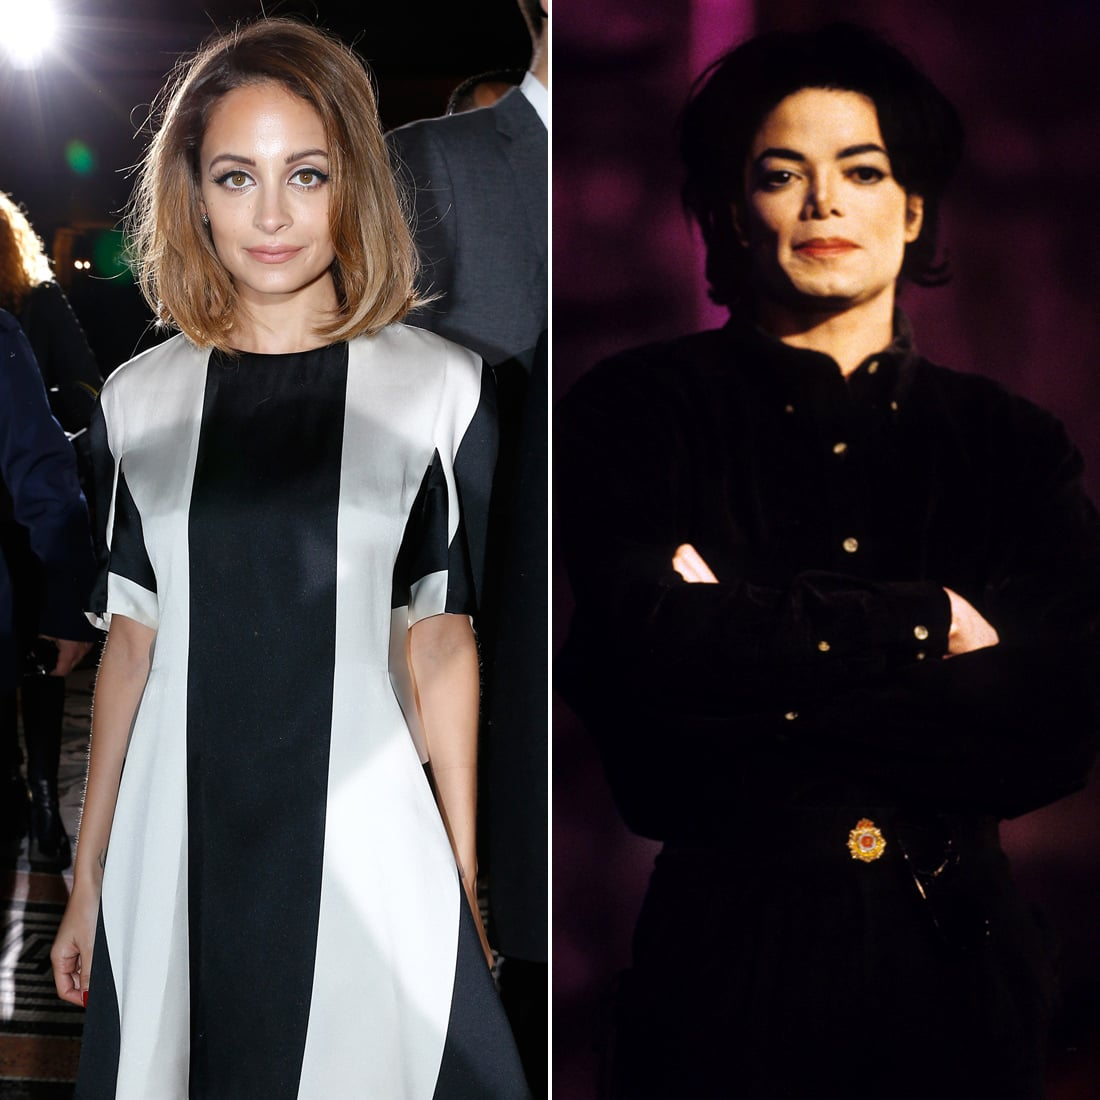 After Nicole Richie was adopted by her superstar dad, Lionel, he named his longtime friend and collaborator Michael Jackson as her godfather. The late singer is just one close family member that was bestowed with the title. The other is. . .